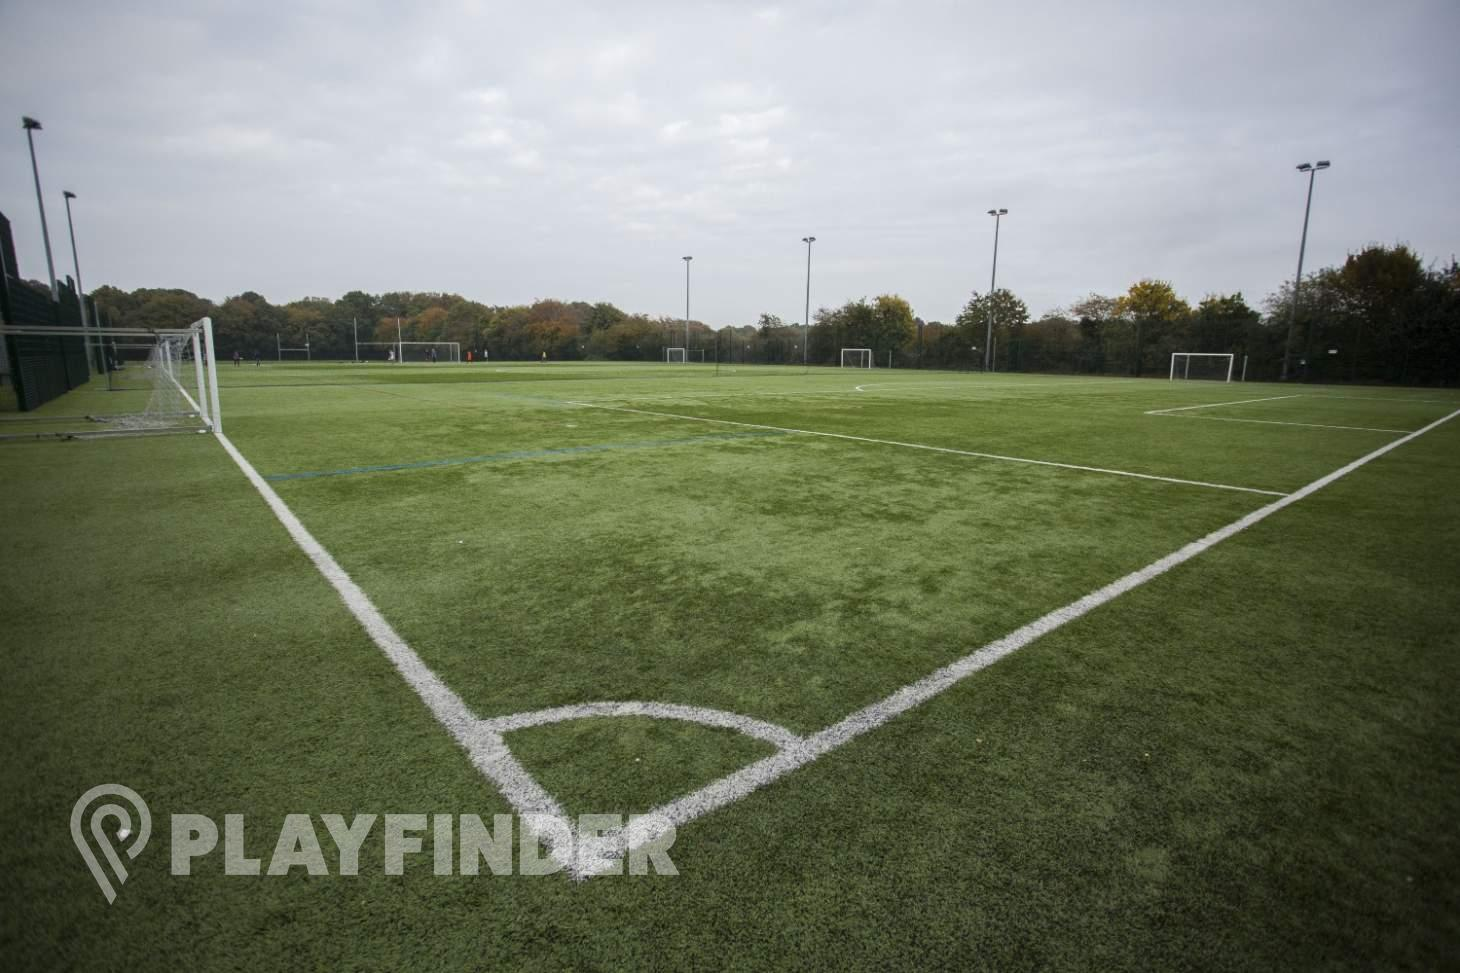 Darwin Leisure Centre 11 a side | 3G Astroturf football pitch